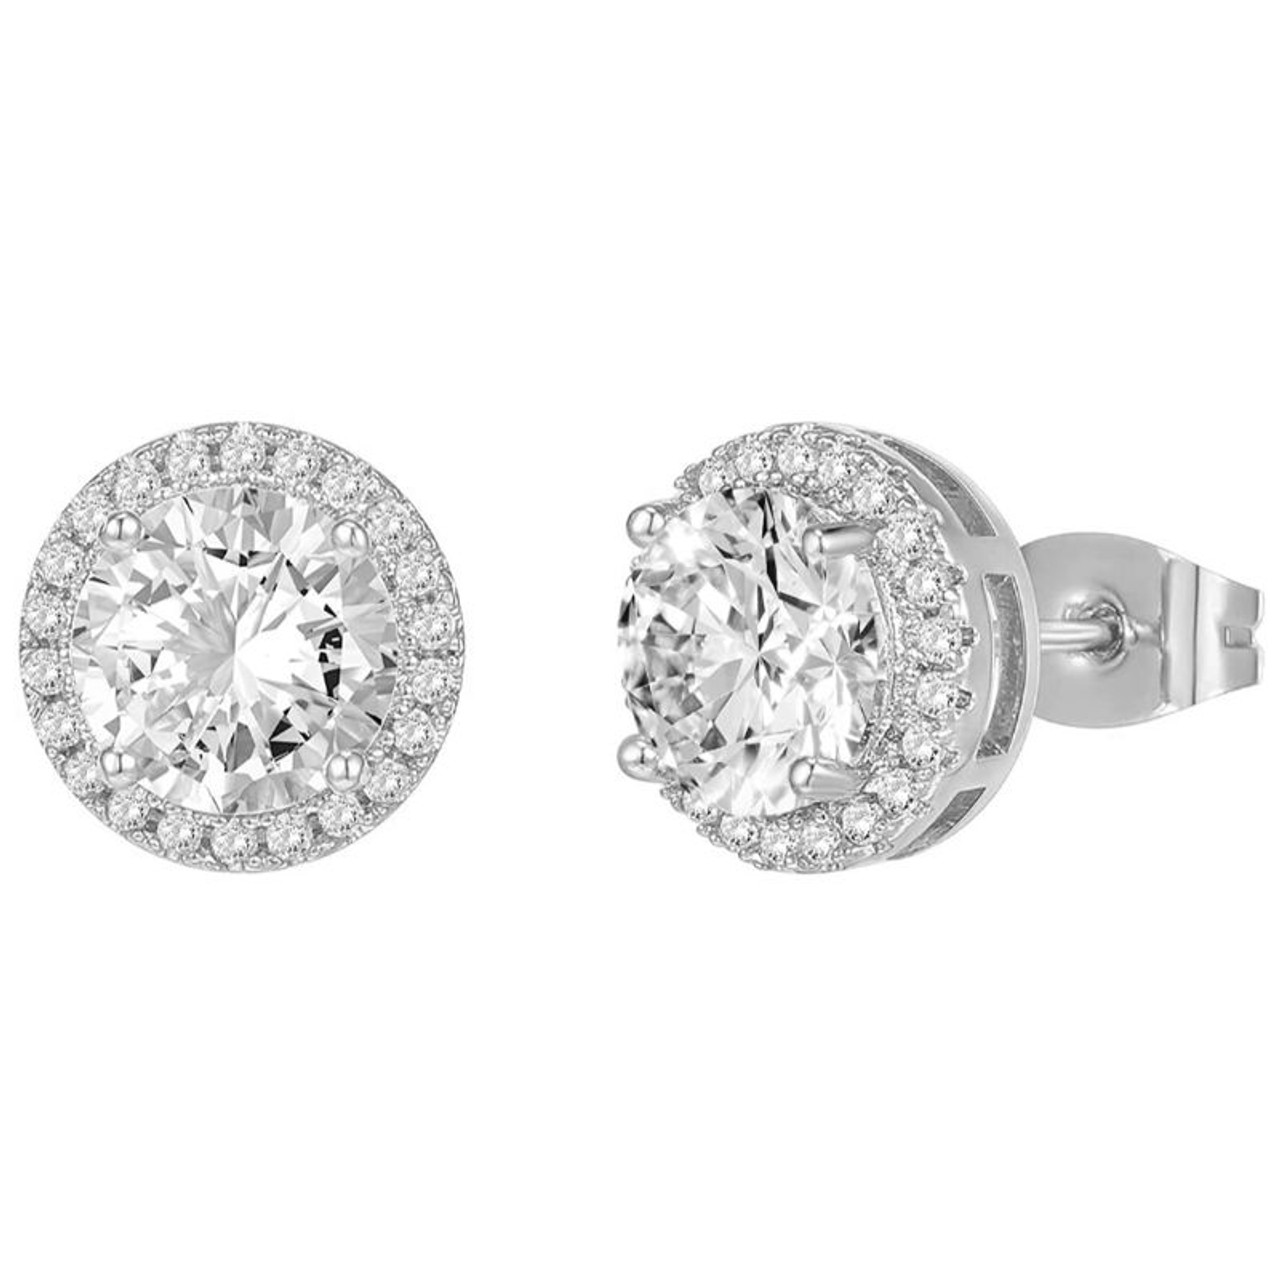 Solid Sterling Silver Round Cut Halo Studs Earrings